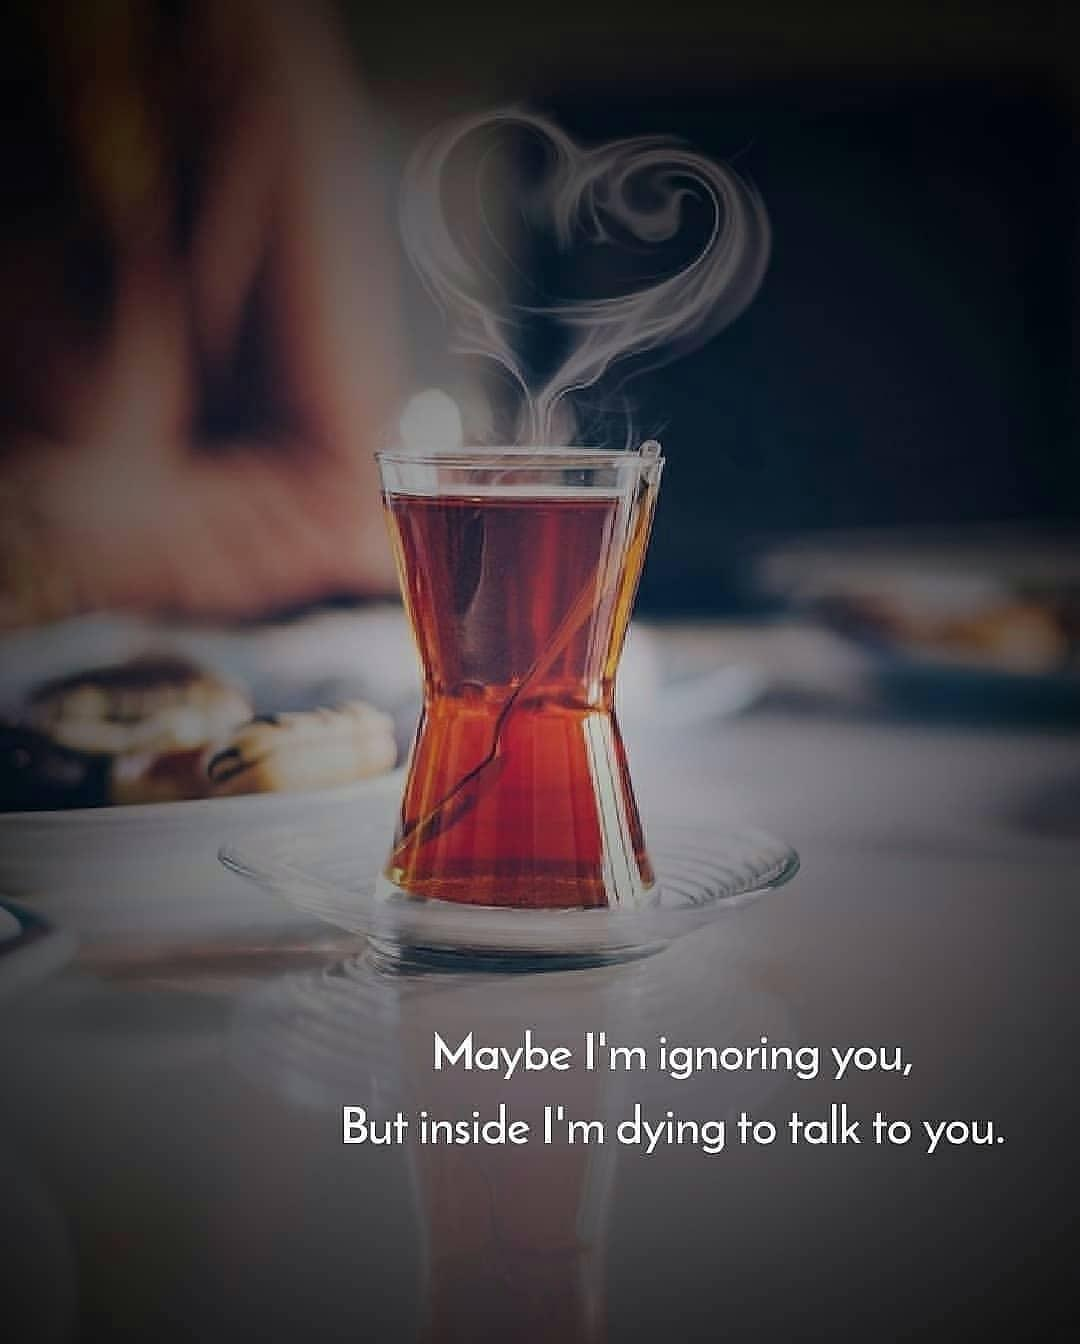 image162aBeing Hurt Quotes-Love Hurt Quotes | Pain Quotes, Being Hurt Quotes and Sayings | Pain Quotes | Top Quotes About Being Hurt by Someone Close to You 7809227603.png